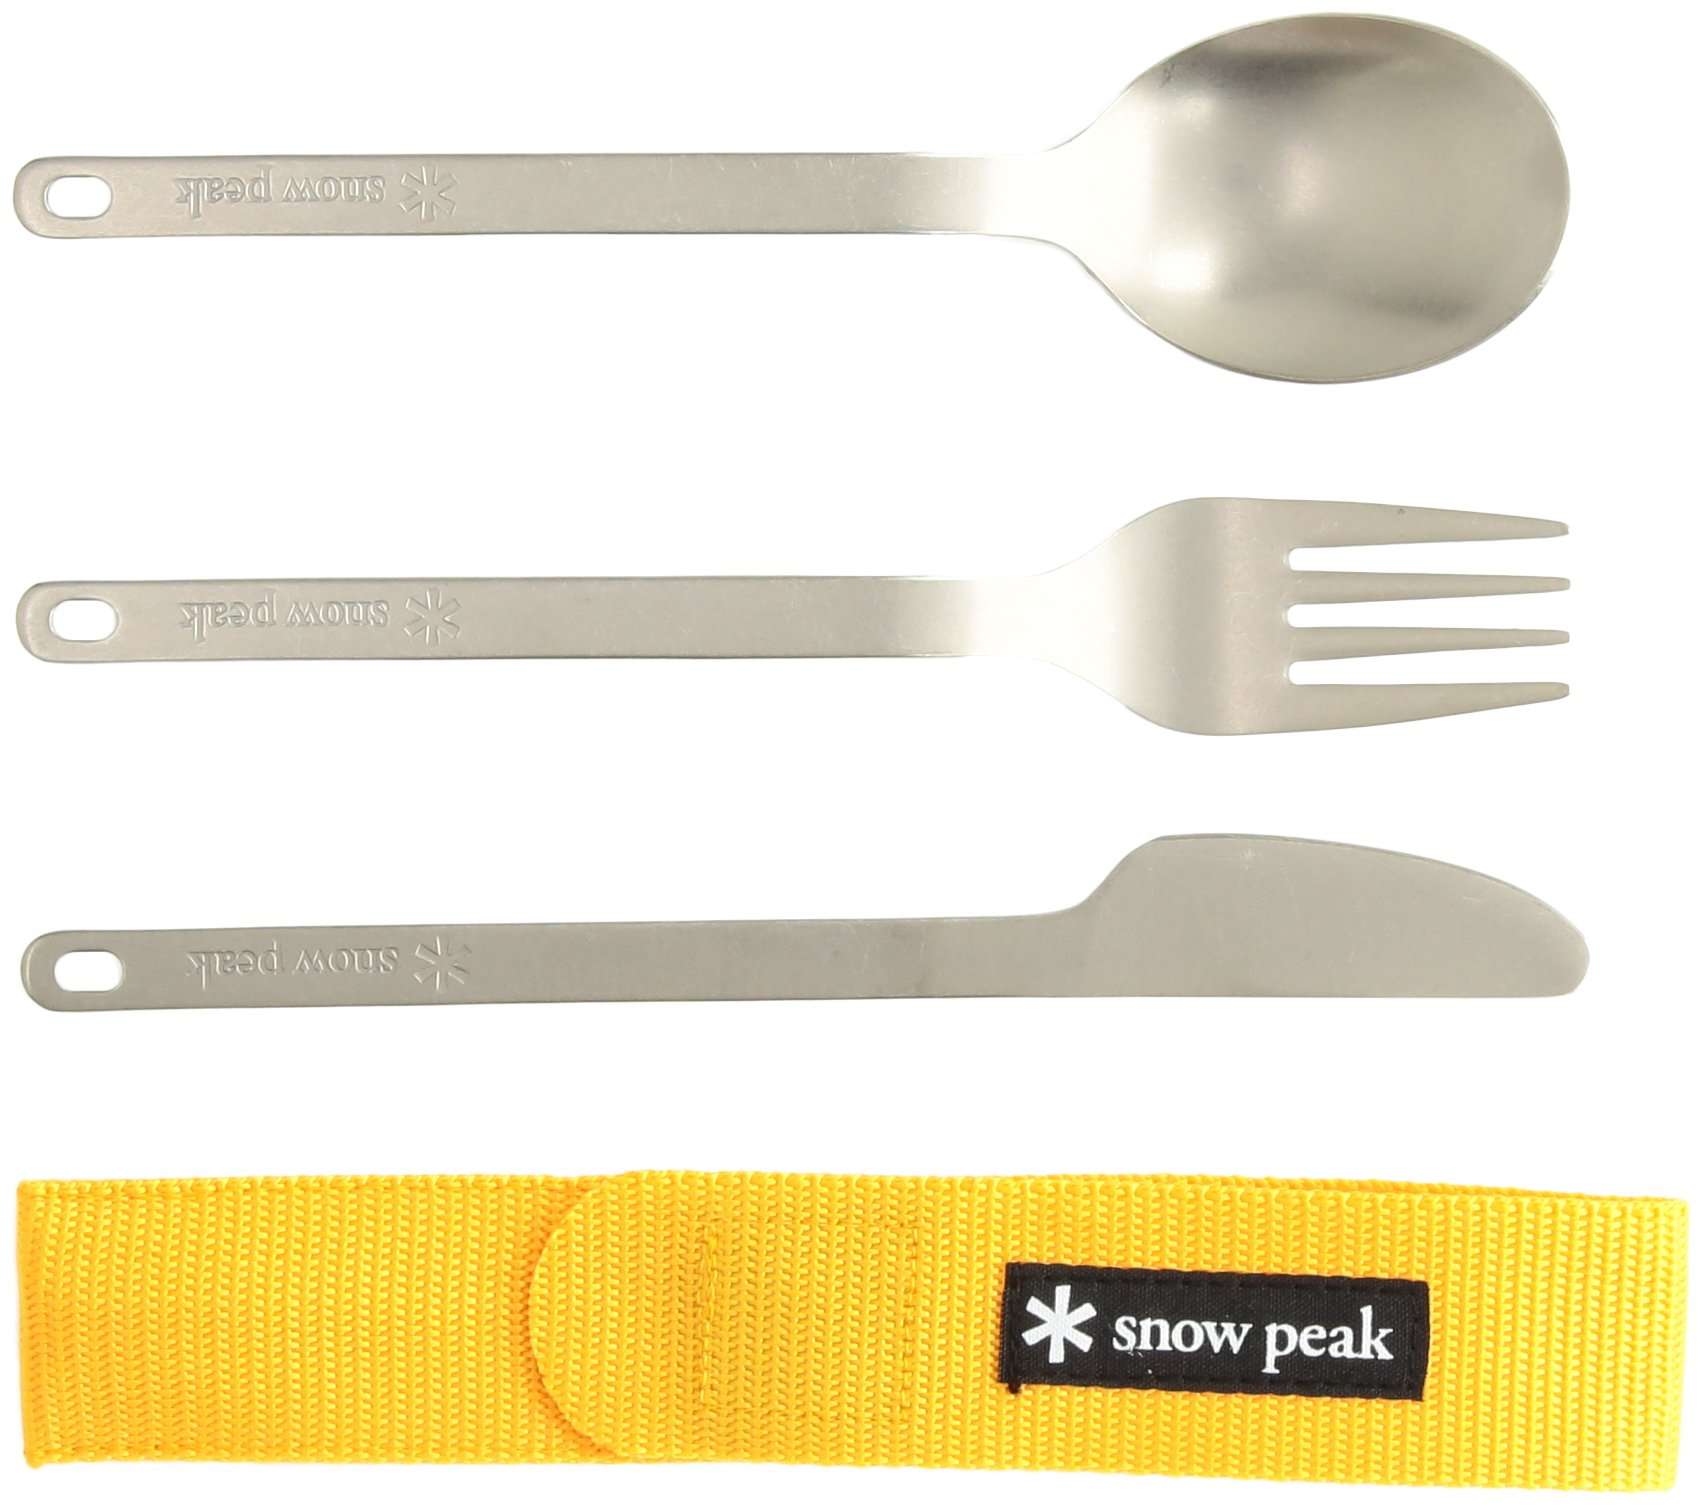 Snow Peak Titanium Silverware Cutlery Set (3-Piece) by Snow Peak